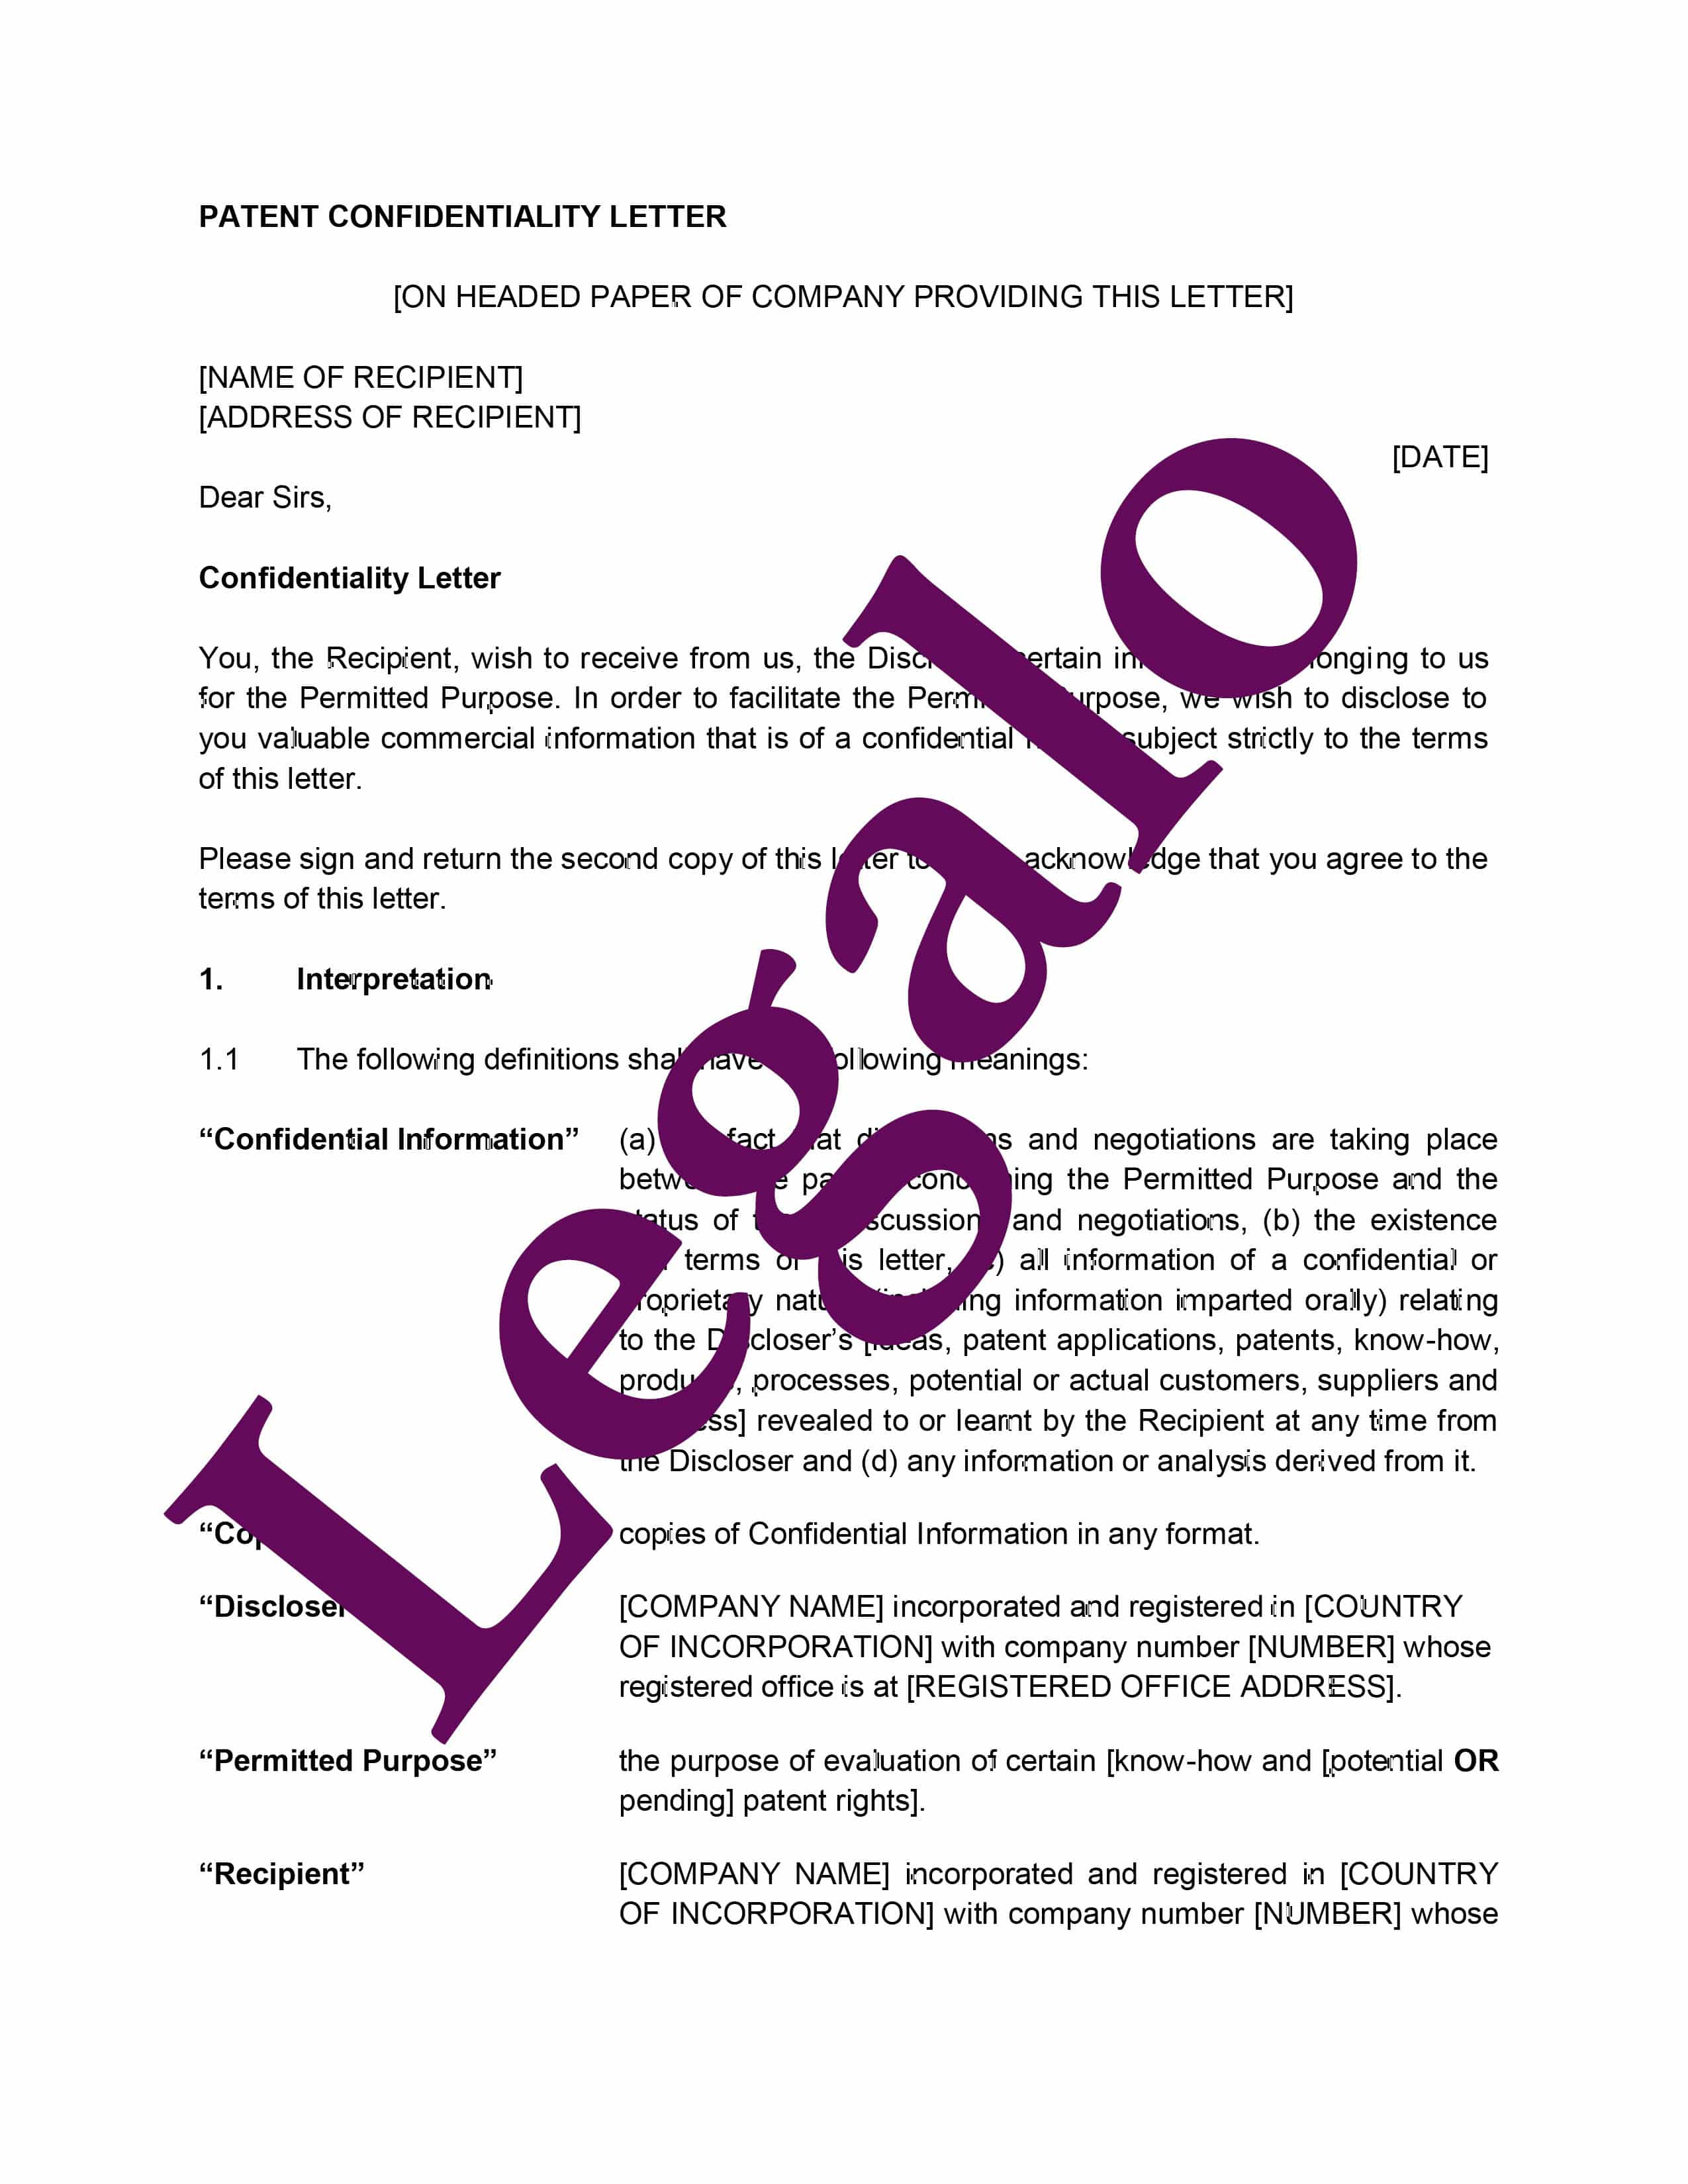 Confidentiality agreement 2 preview image page 1